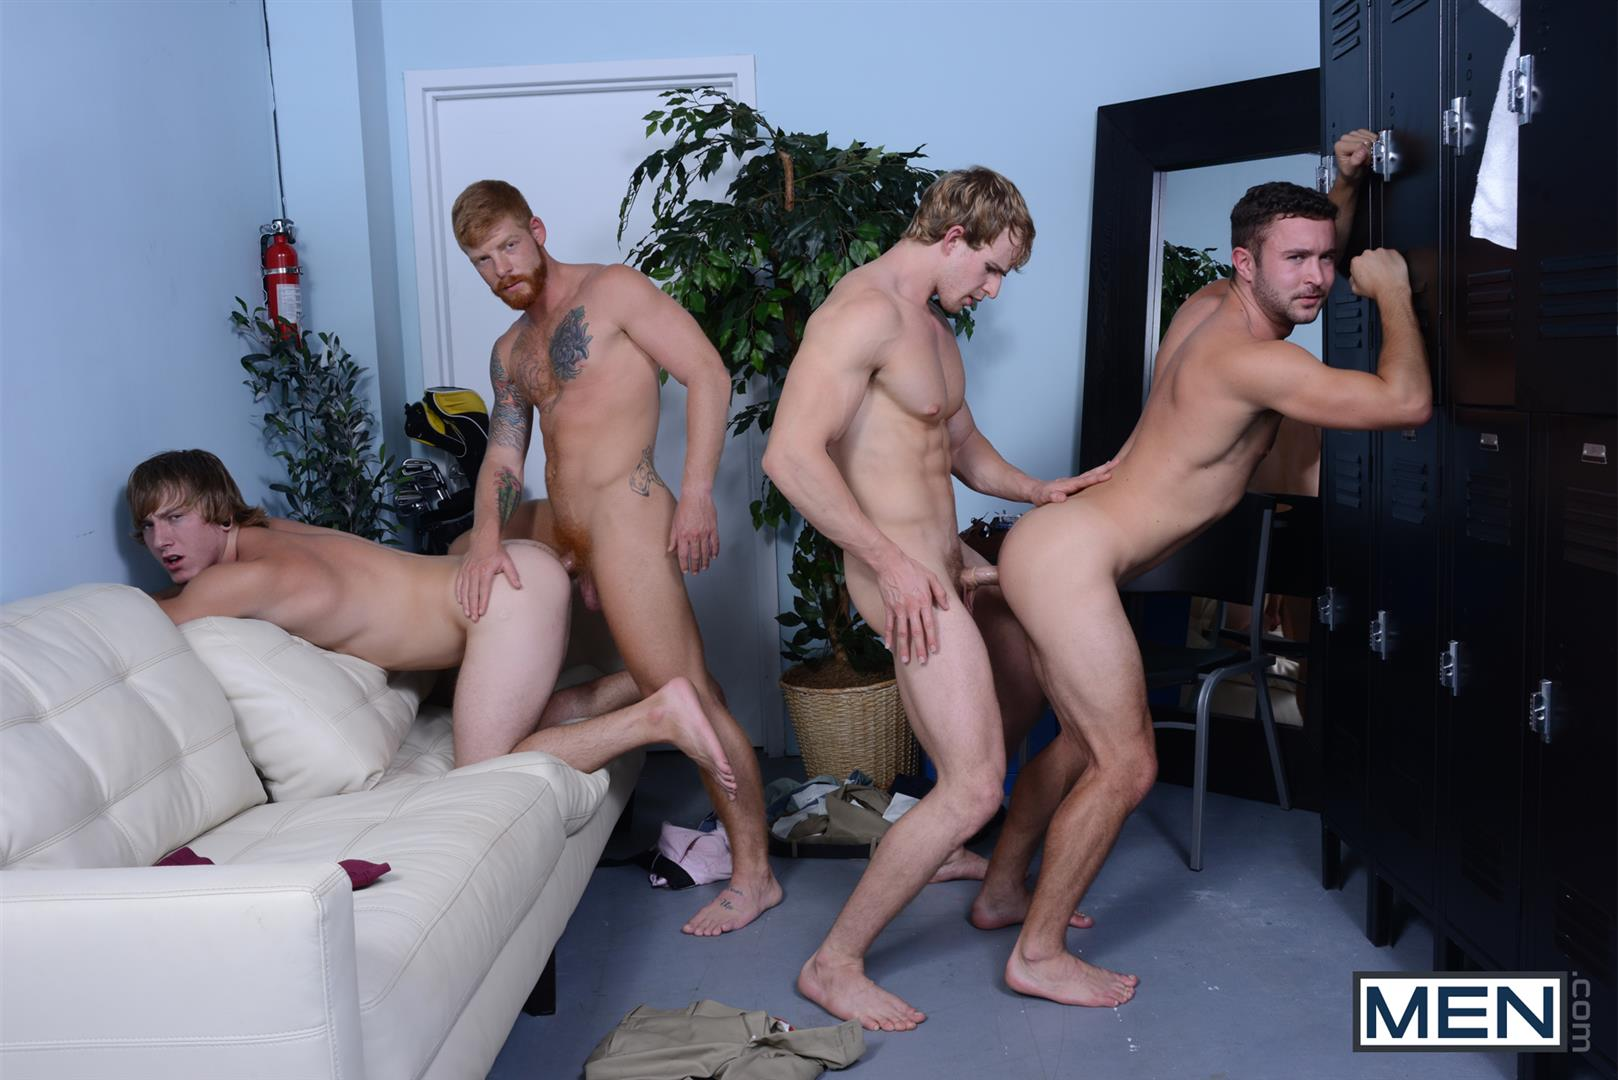 Men-Jizz-Orgy-Swingers-Bennett-Anthony-and-Cameron-Foster-and-Colt-Rivers-and-Tom-Faulk-Fucking-Bathroom-Amateur-Gay-Porn-32 Hung Golfing Buddies Fucking In The Bathroom and Clubhouse